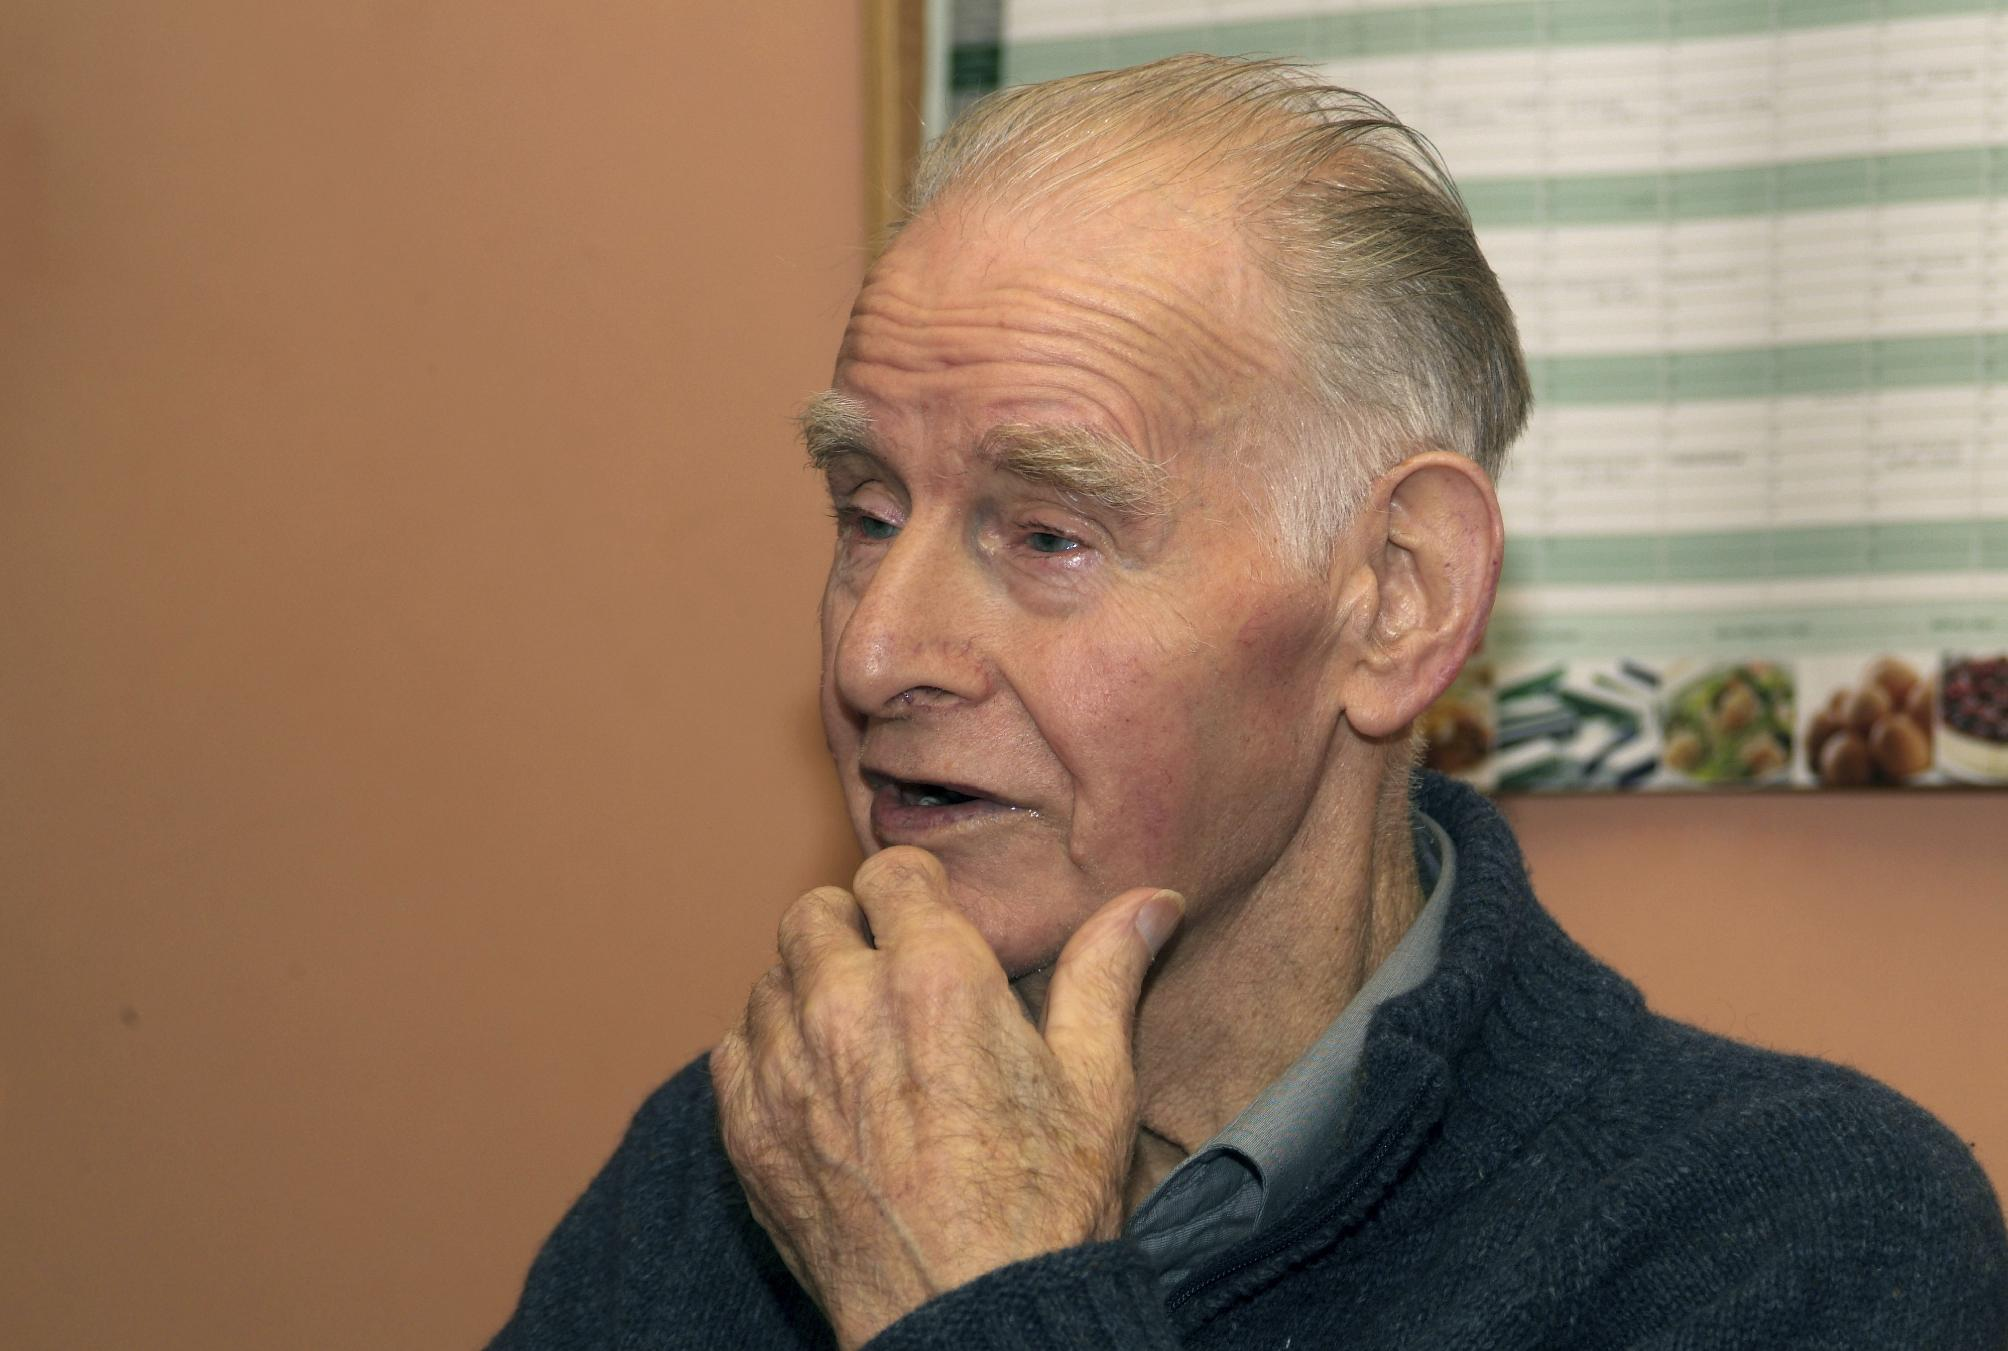 In this image released by Am Baile - High Life Highland on Thursday Oct. 4. 2012 shows an undated image of Bobby Hogg, who recently passed away aged 92. Hogg was the last person fluent in the dialect once common to the Scottish seaside town of Cromarty, about 175 miles (280 kilometers) north of Edinburgh. (AP Photo/Am Baile-High Life Highland)